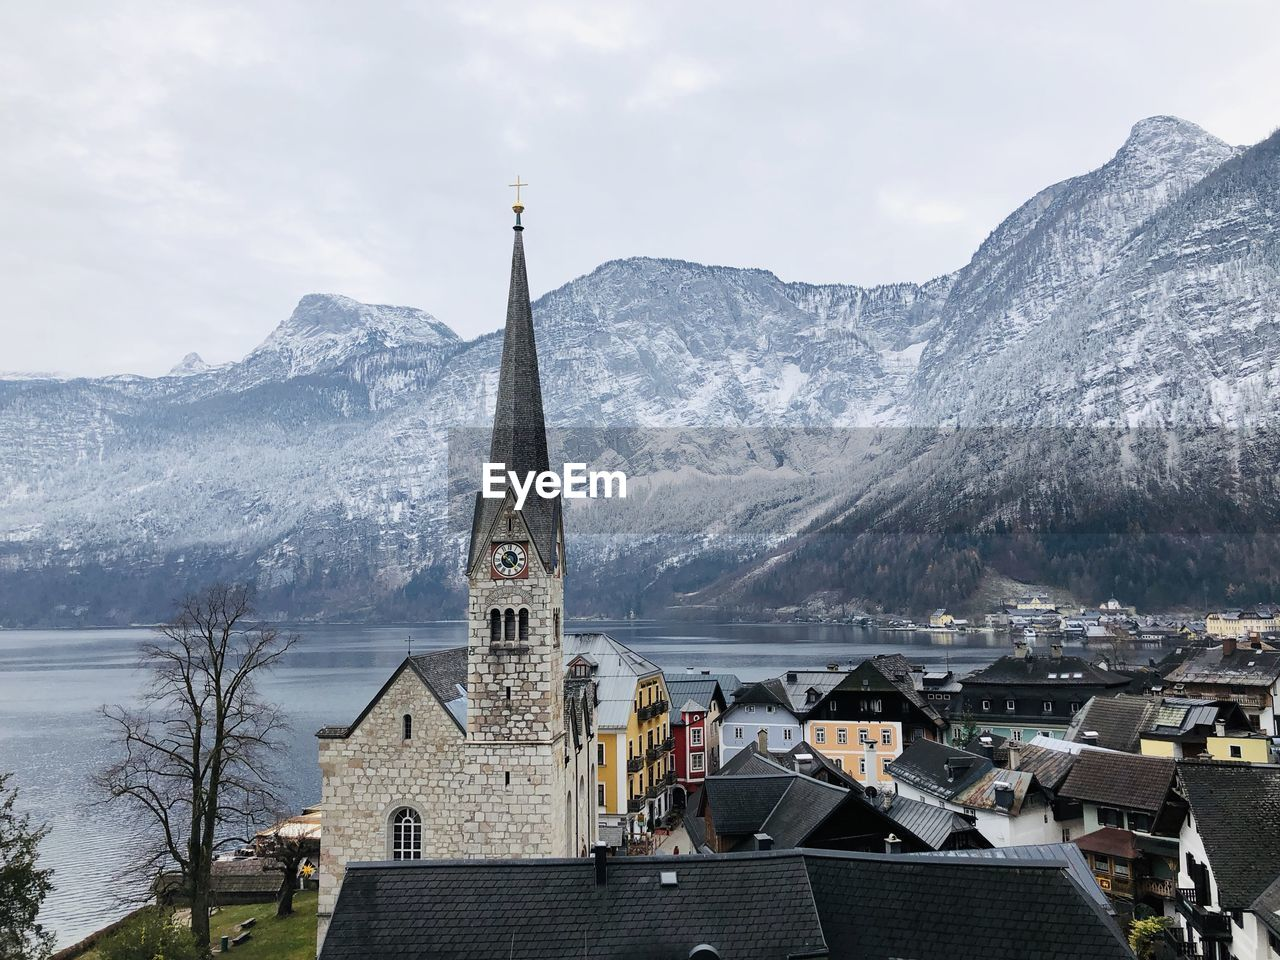 architecture, built structure, building exterior, building, place of worship, mountain, religion, belief, spirituality, sky, nature, mountain range, city, cold temperature, tower, winter, no people, outdoors, spire, snowcapped mountain